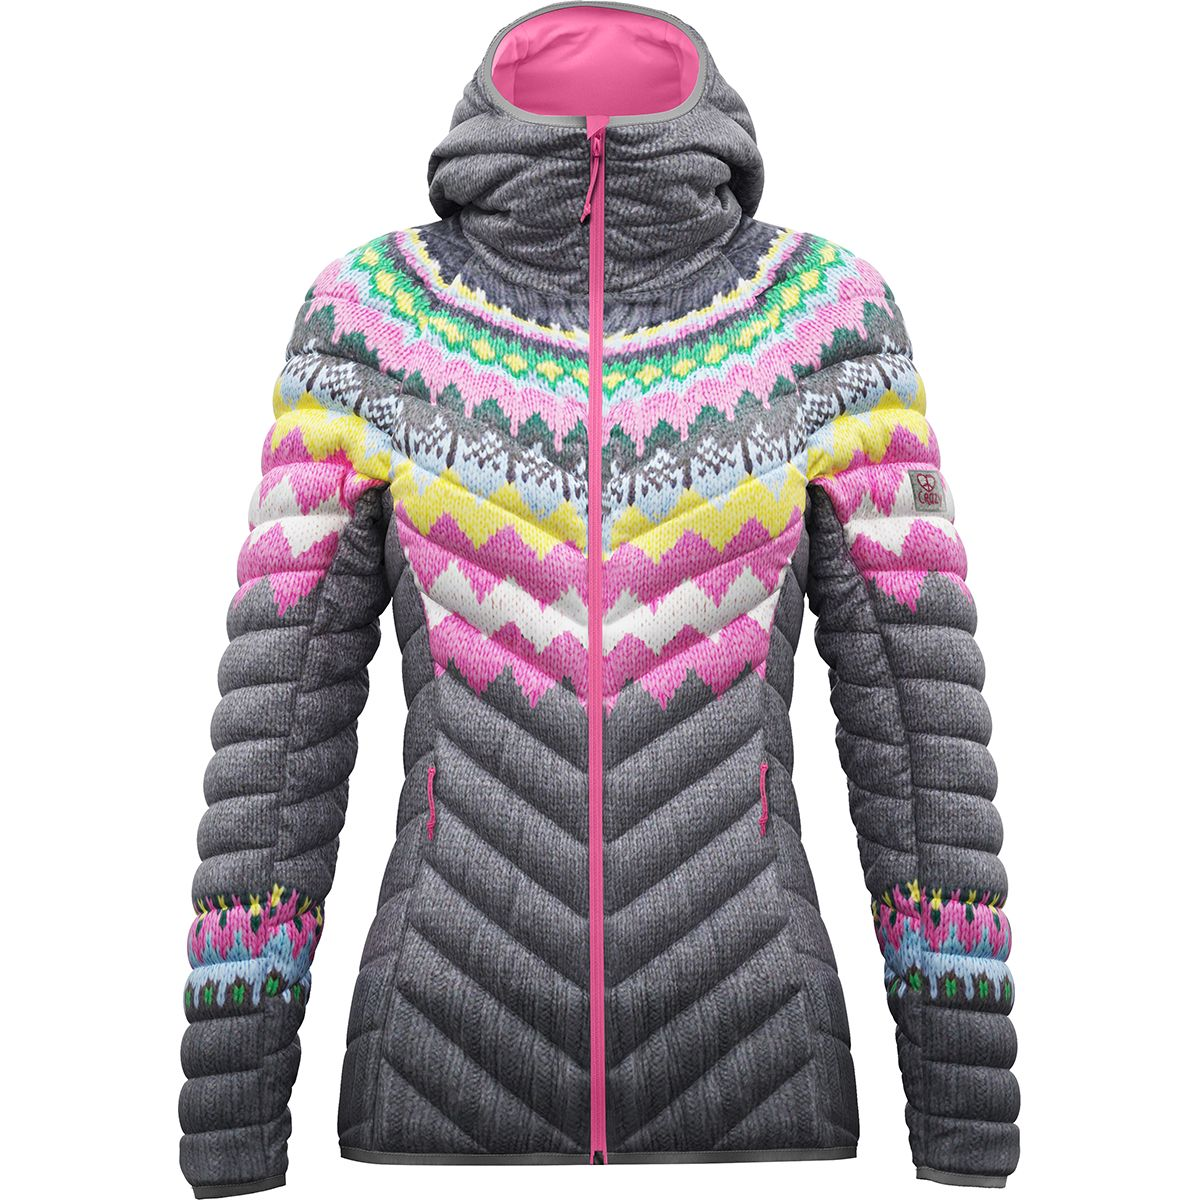 Crazy Idea Damen Summit Jacke (Grau) | Isolationsjacken > Damen